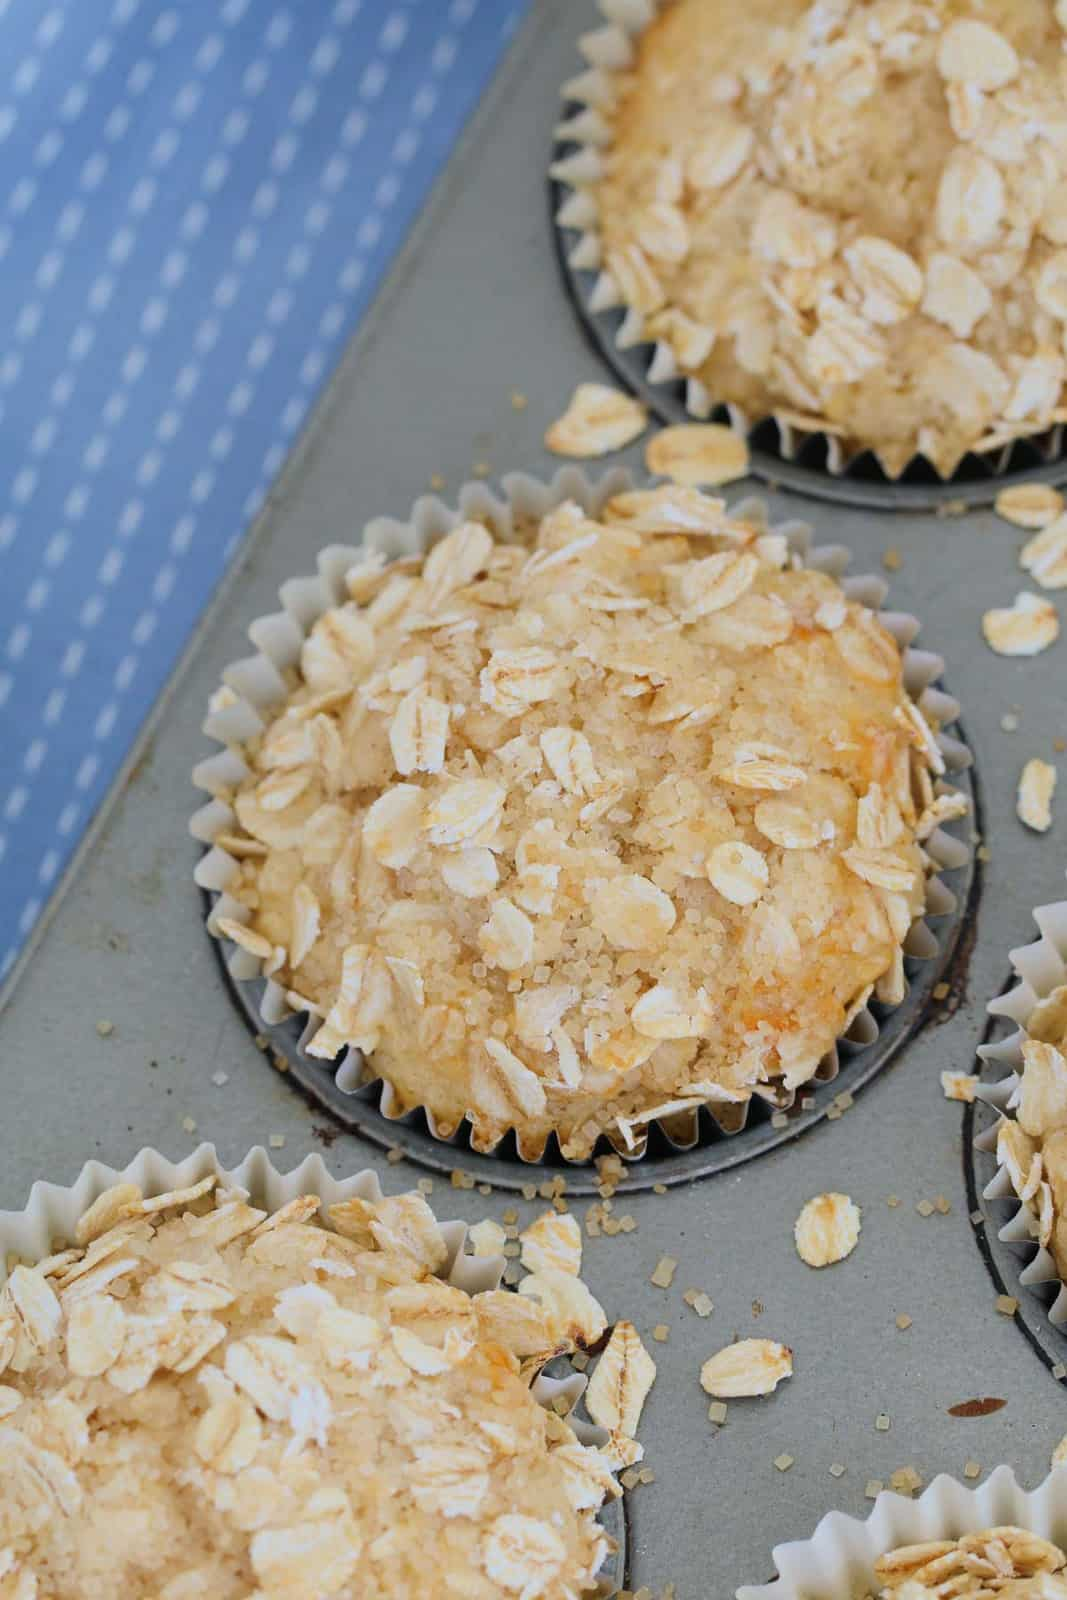 A close up shot of baked apple muffins with rolled oats sprinkled on top